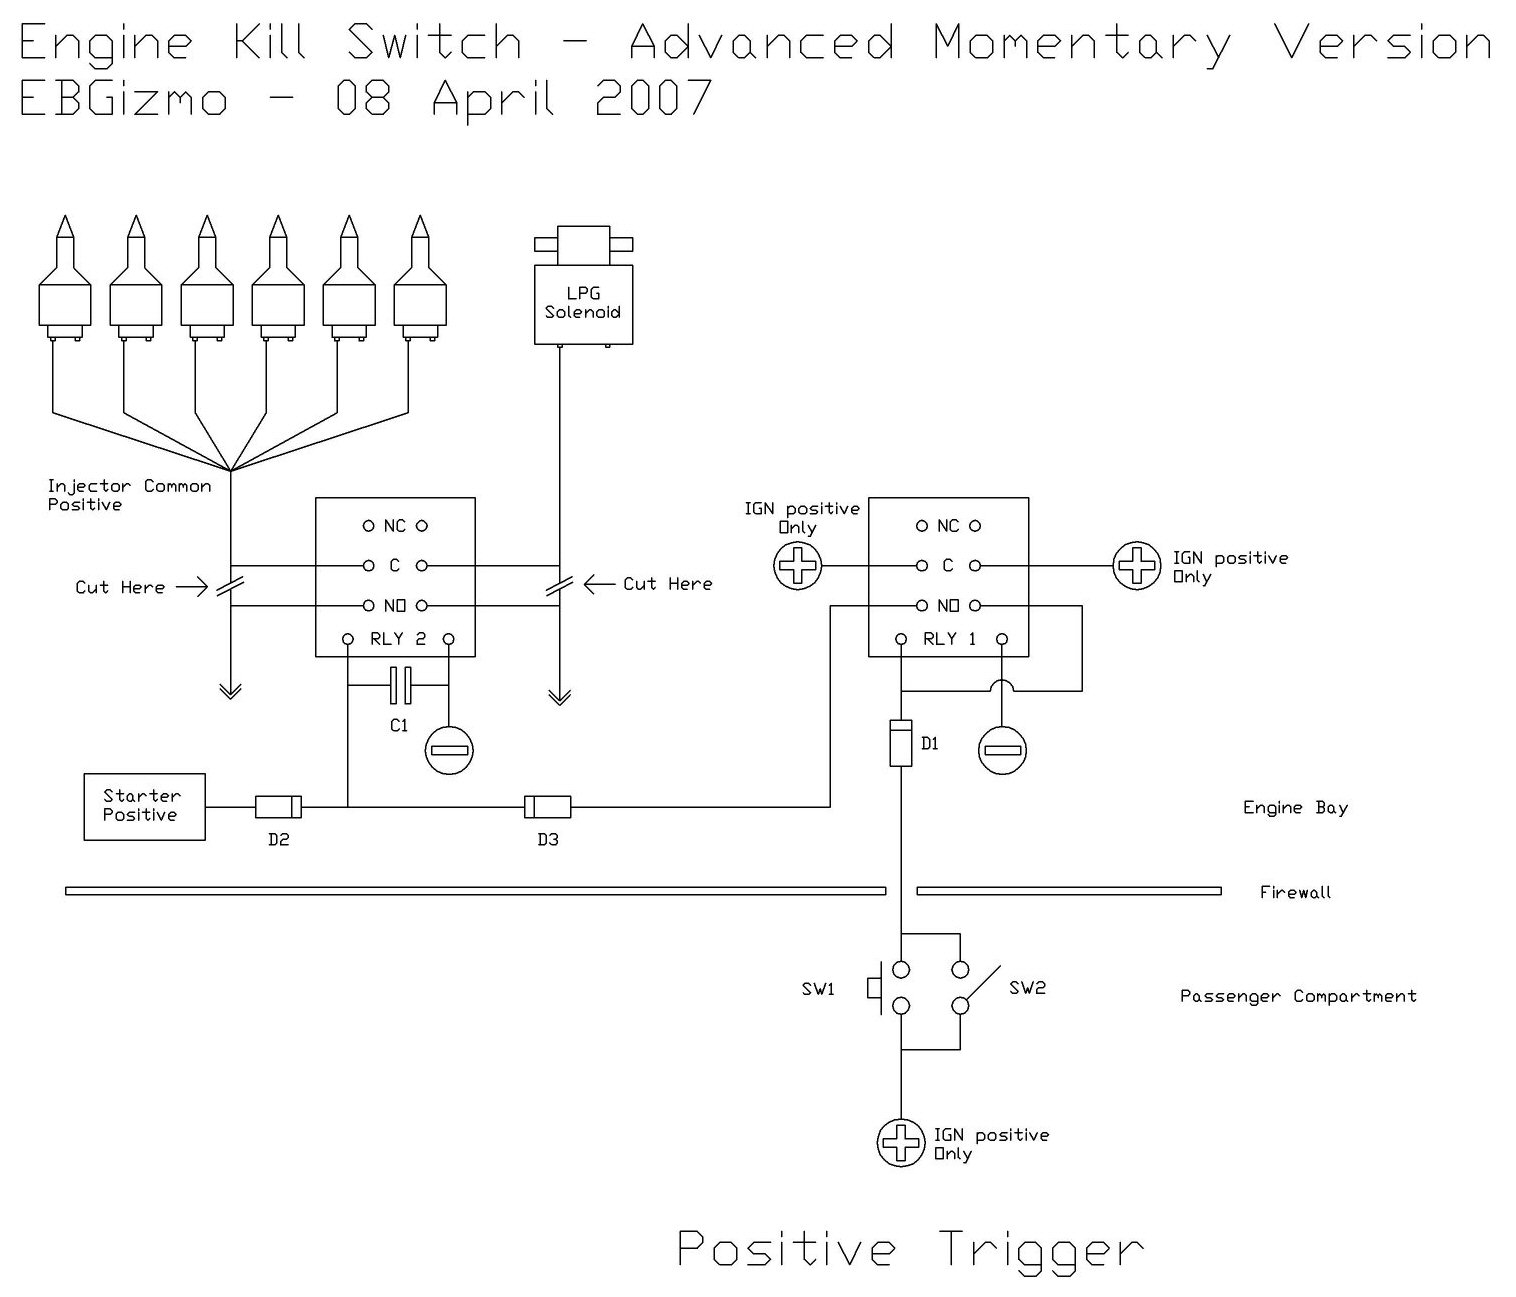 Kill Switch Advanced Momentary Print Layout (4)-000001.jpg